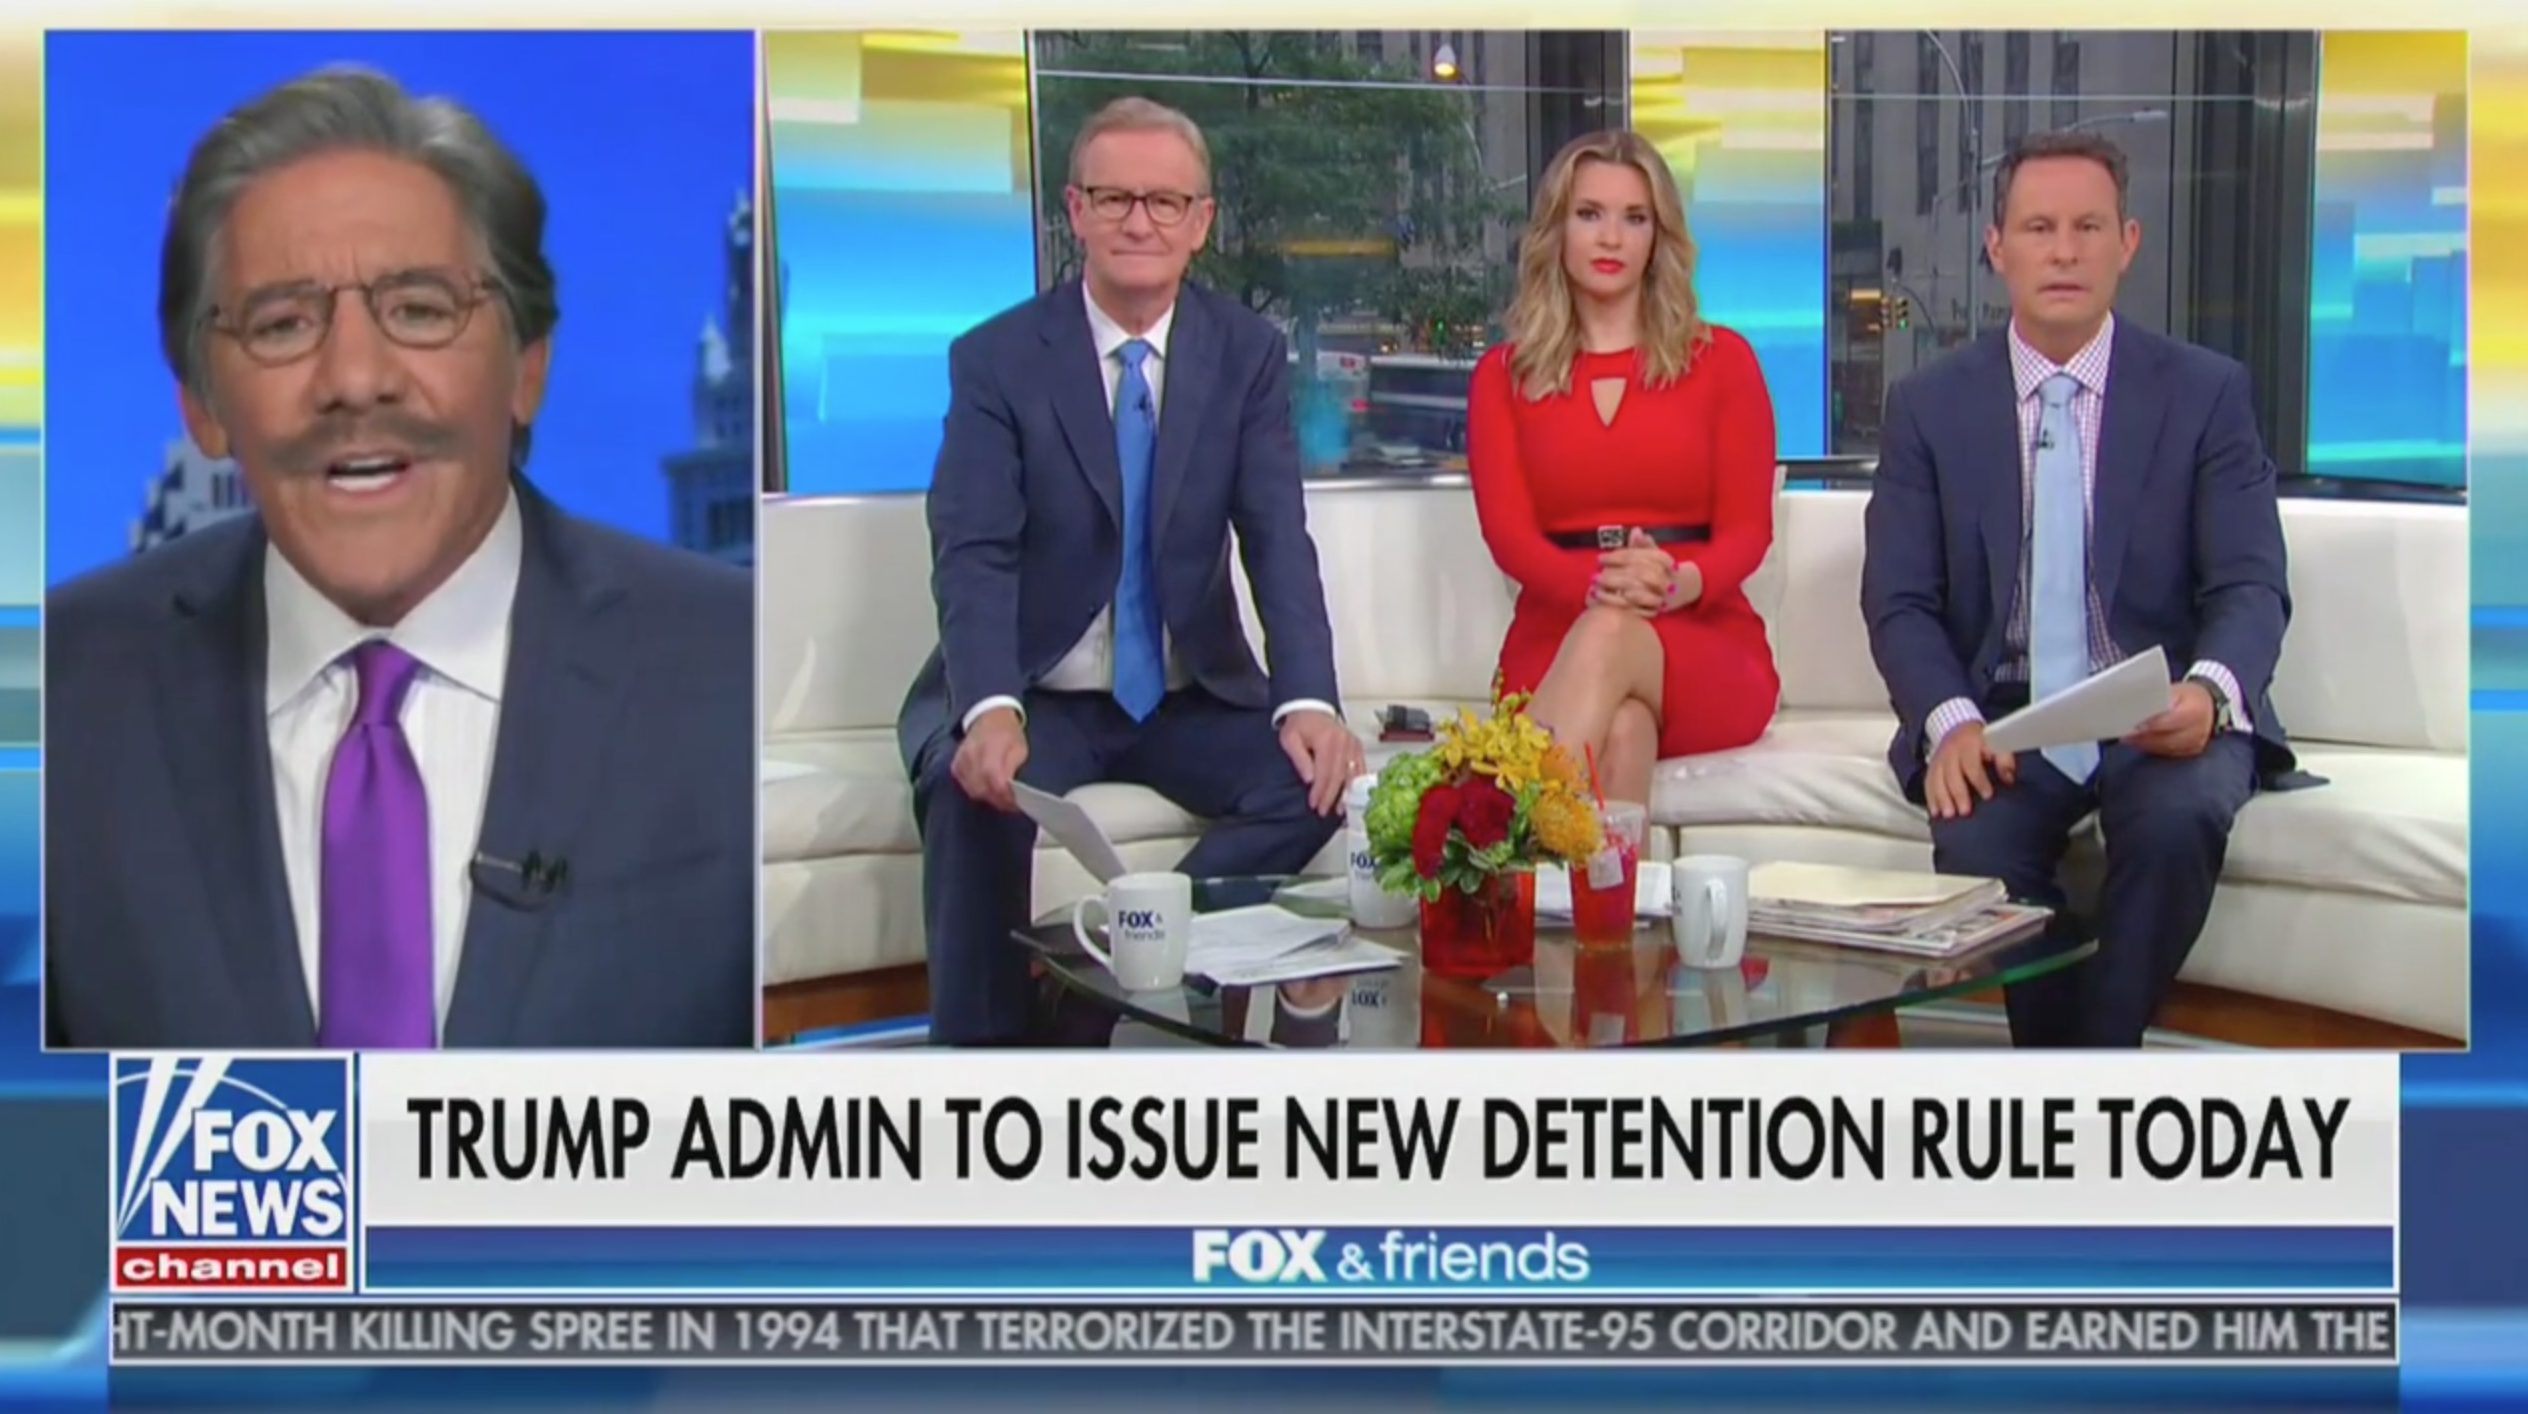 Geraldo Slugs it Out With Brian Kilmeade on Immigration: Trump Administration Can't Be 'The Administration of Child Abuse'